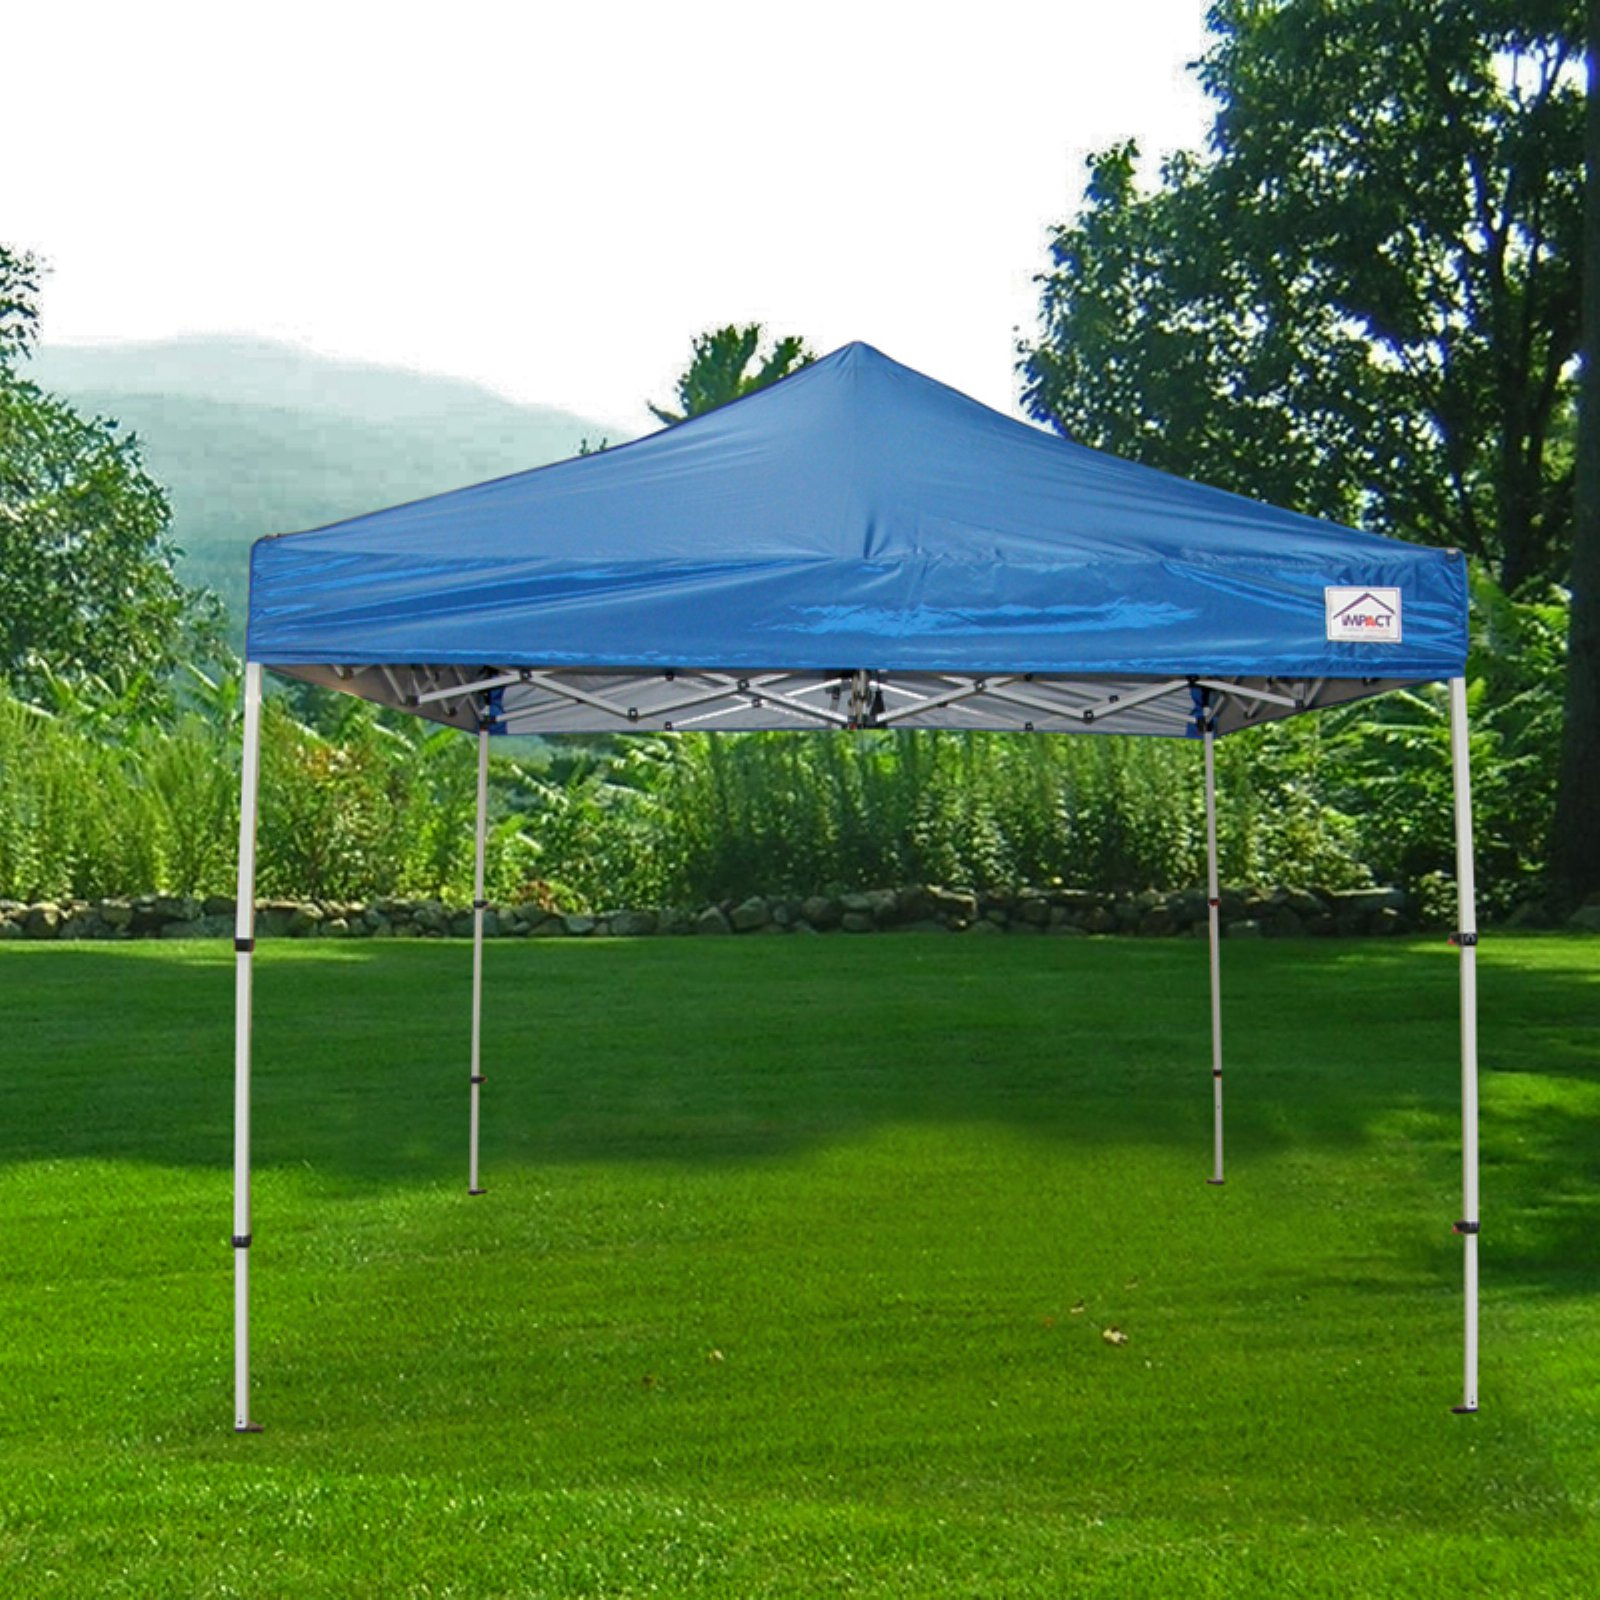 Impact Canopy 10 x 10 ft. Pop Up Canopy Tent Folds To 42 in. Tall Instant Canopy